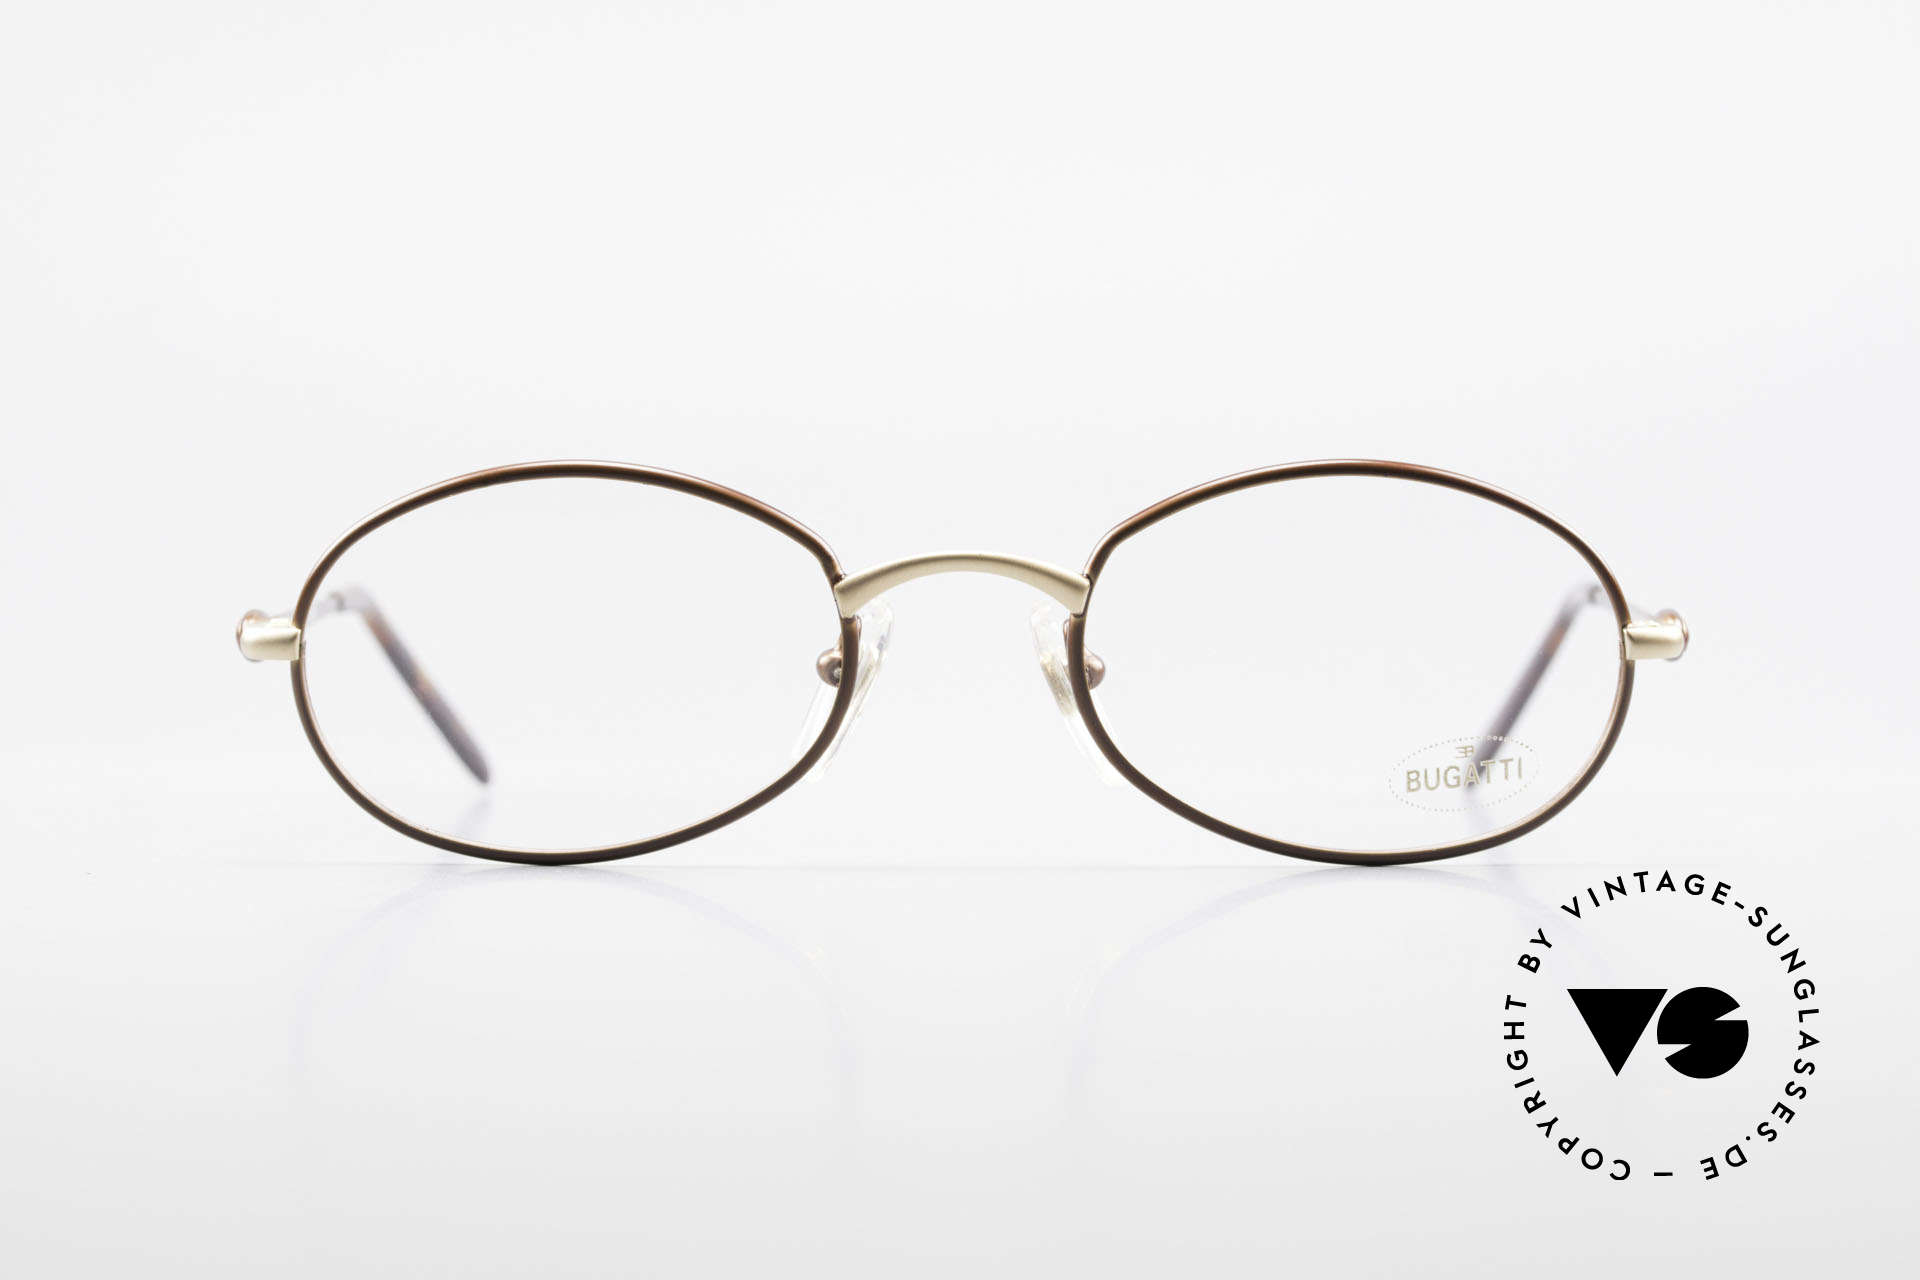 Bugatti 22369 Rare Oval 90's Vintage Frame, interesting frame finish in gold and brown-metallic, Made for Men and Women